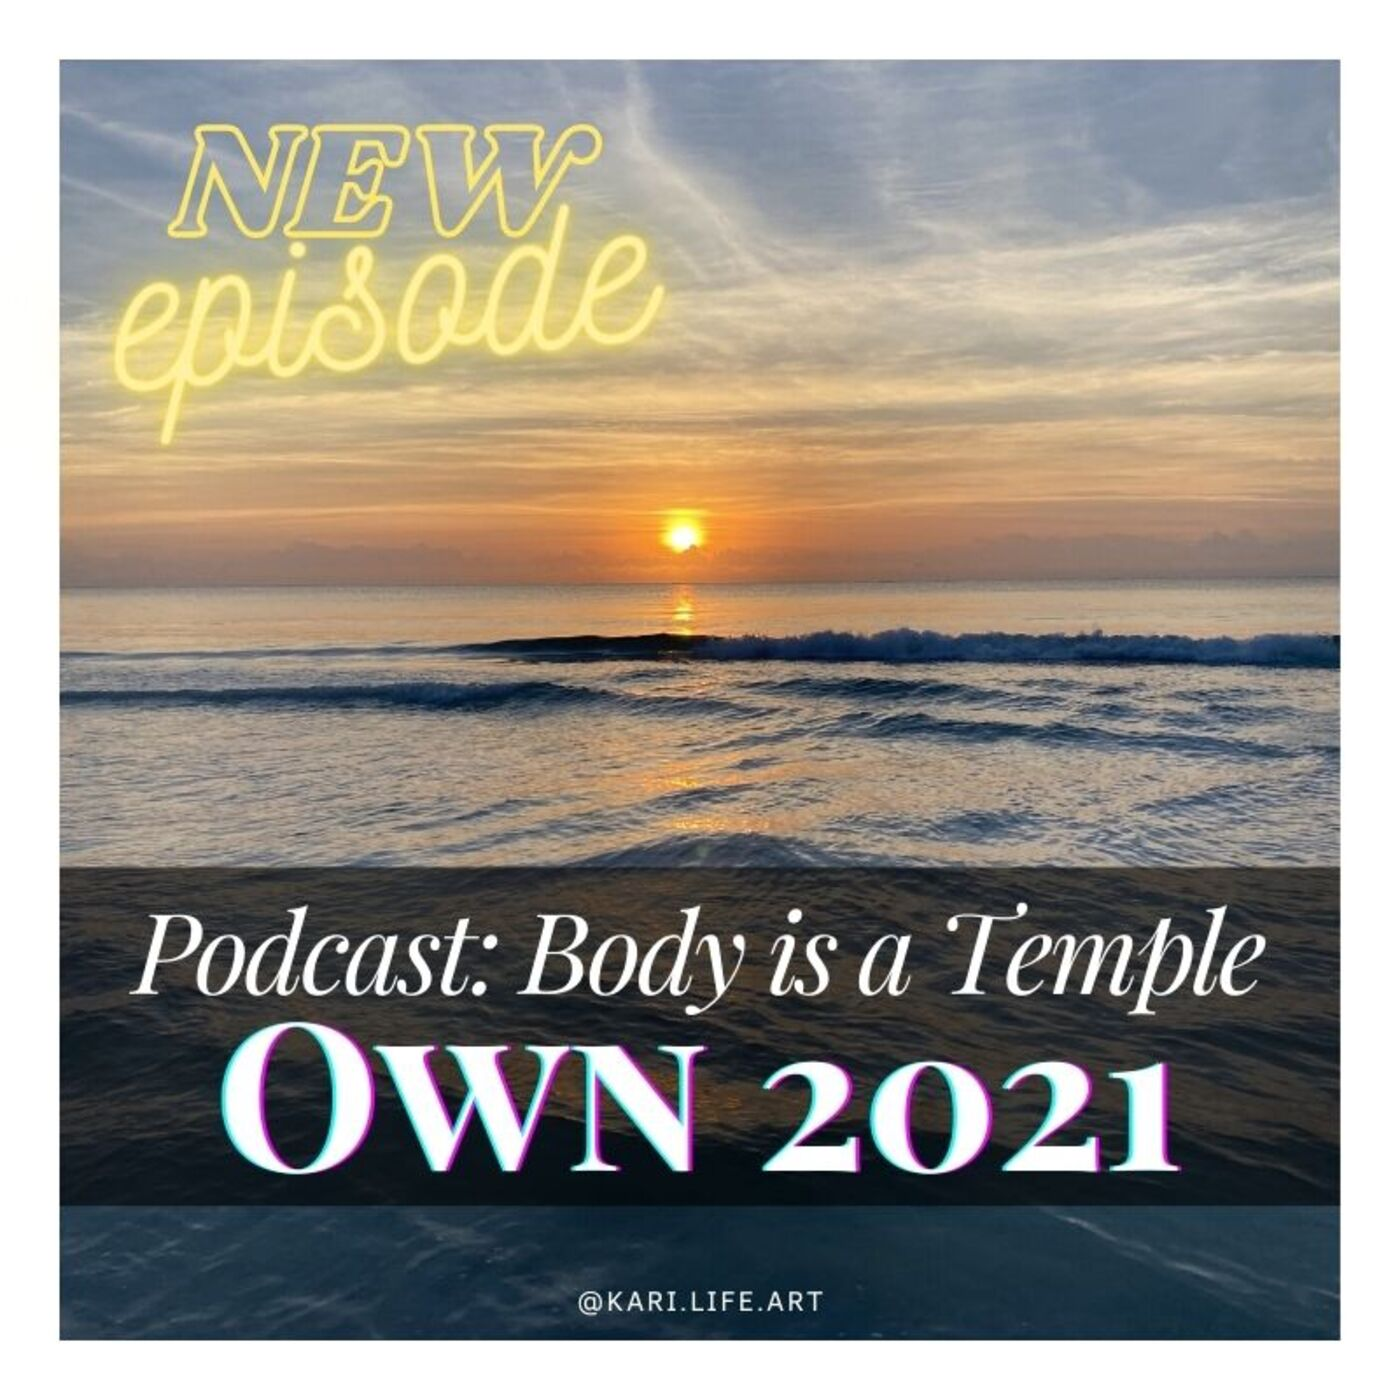 #036 [ BODY IS A TEMPLE ] Own 2021 with Johnna